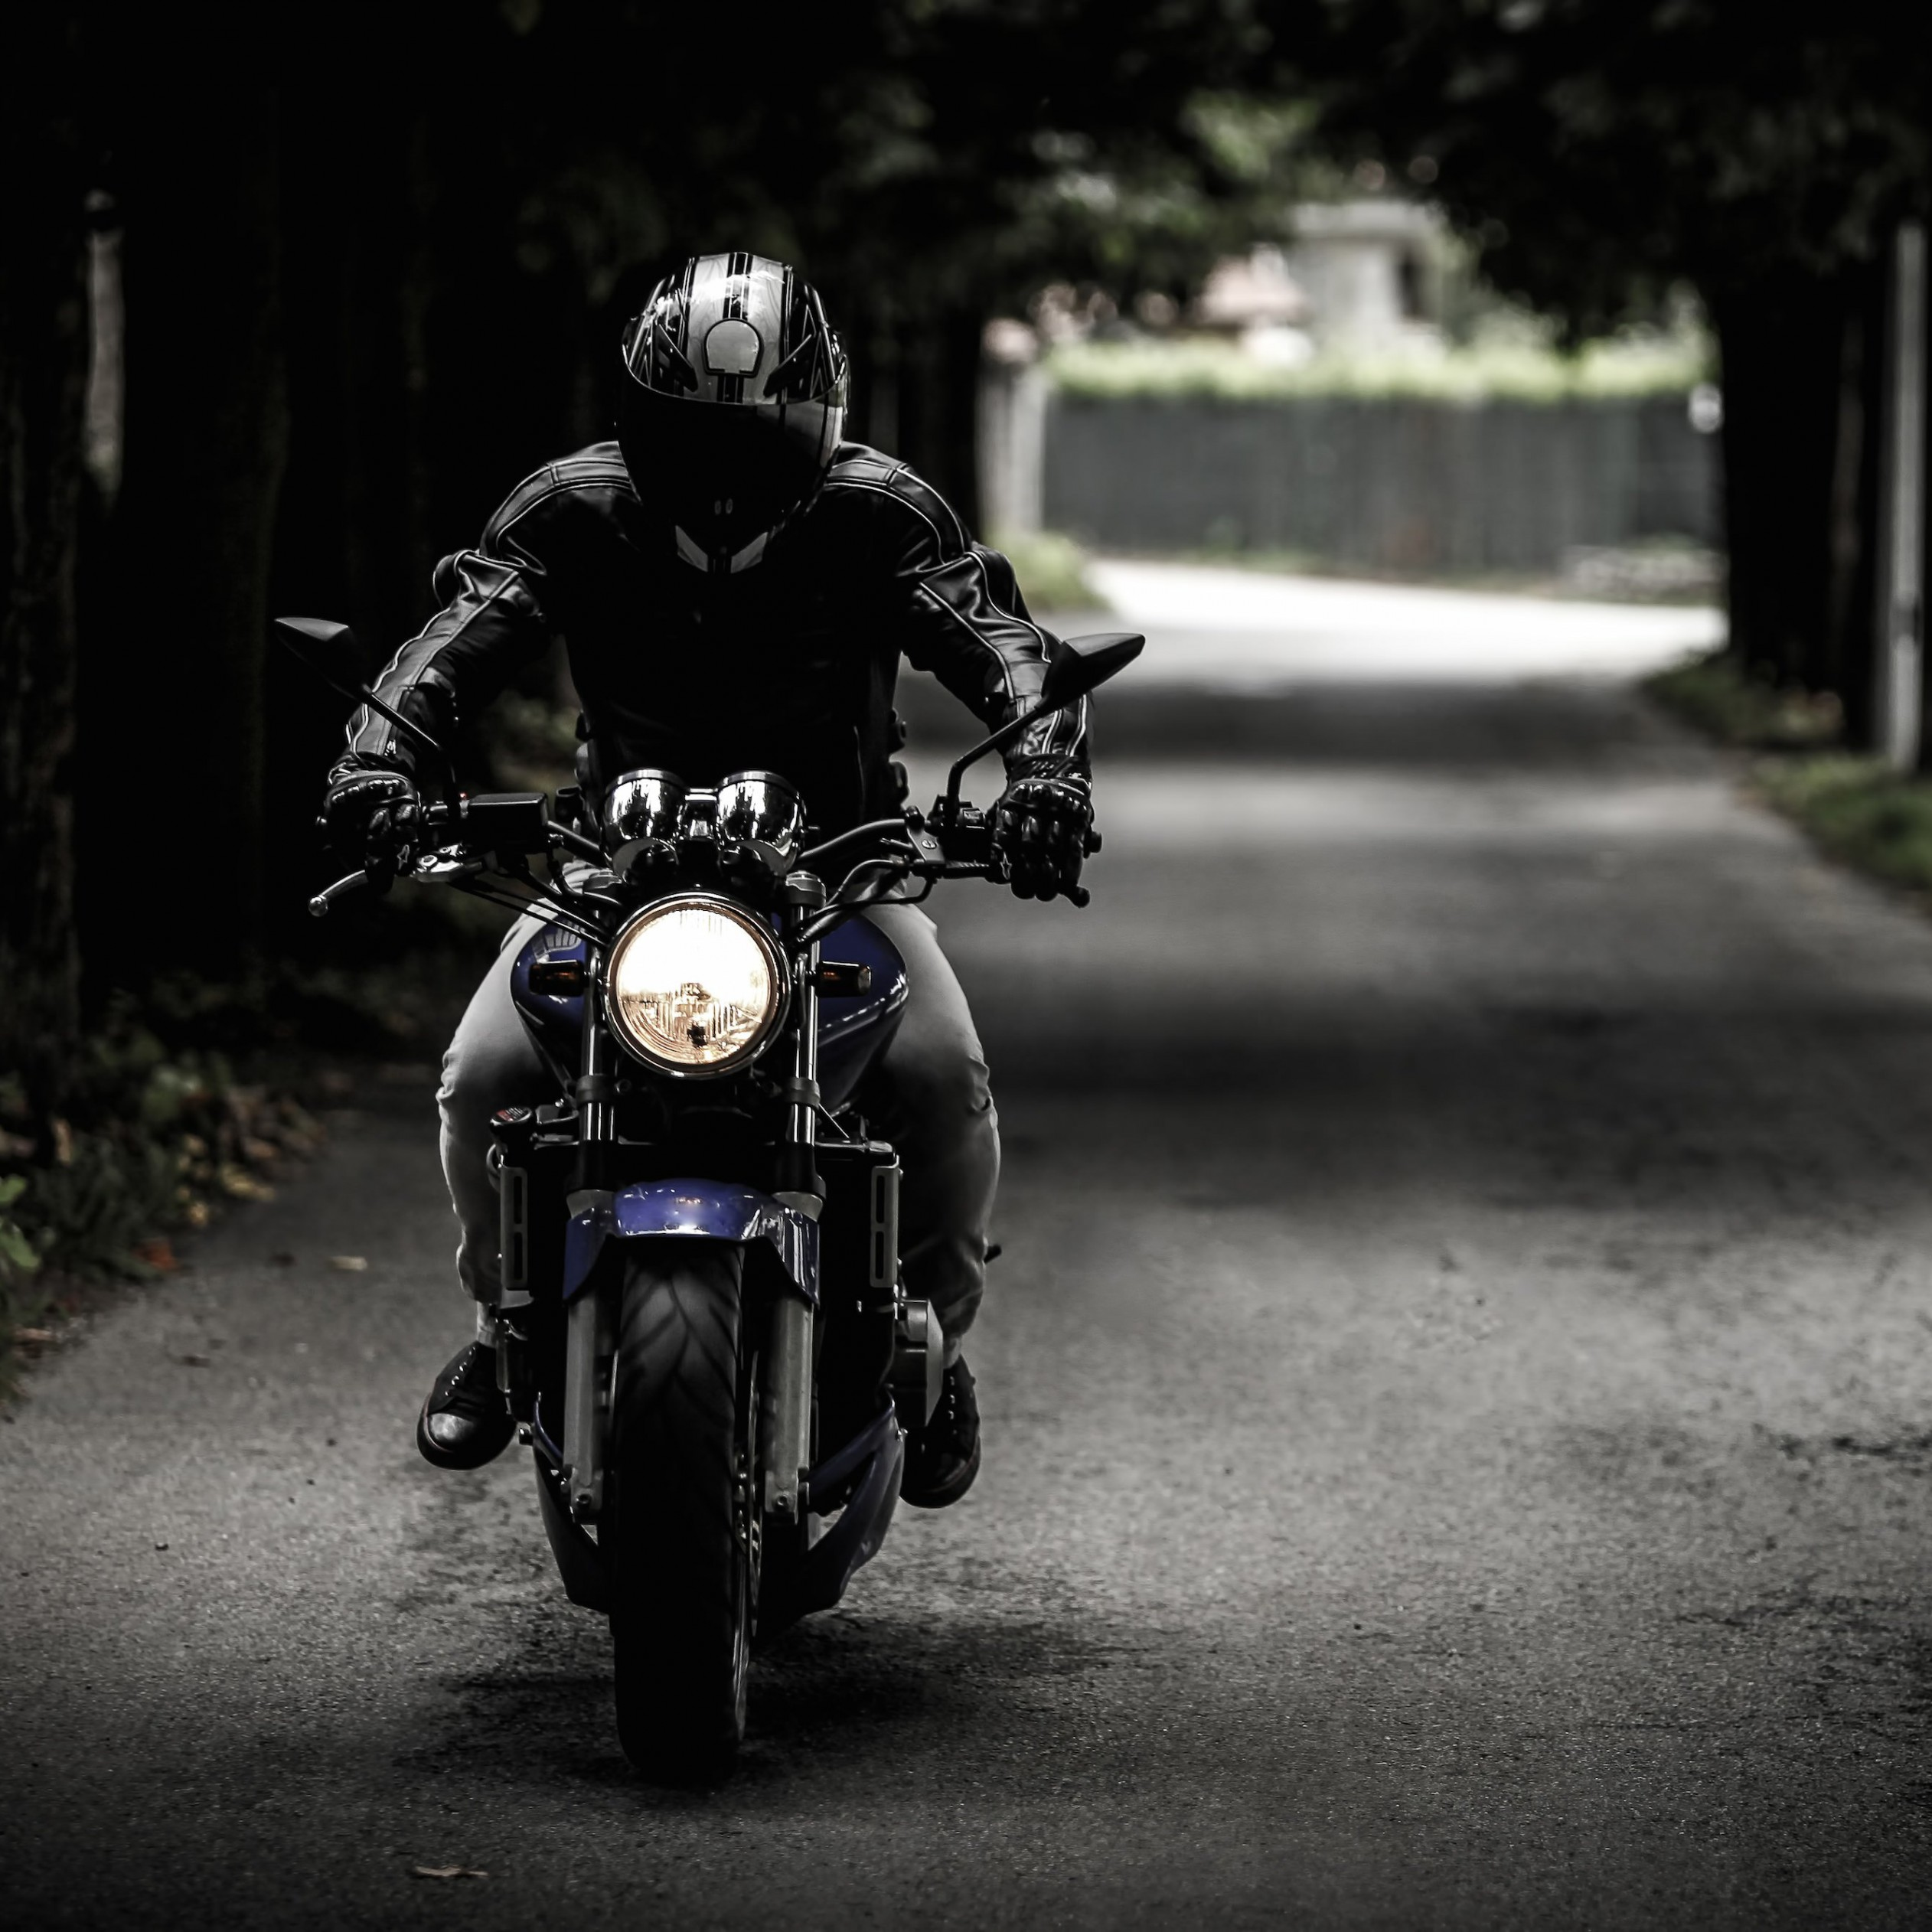 Bike Rider Wallpaper for Apple iPad 4